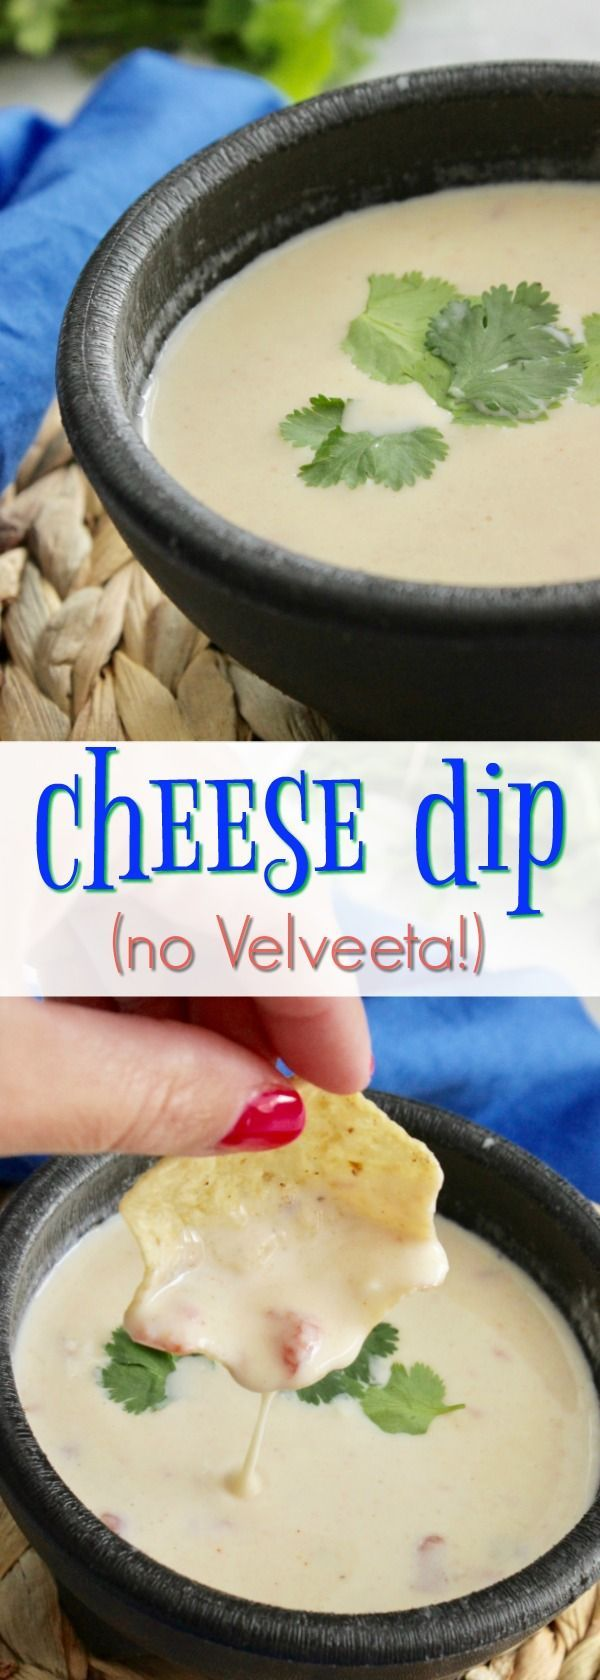 This Queso - No Velveeta guys! So, it's better for my family - I love that! #appetizer #food #recipe #hotdips